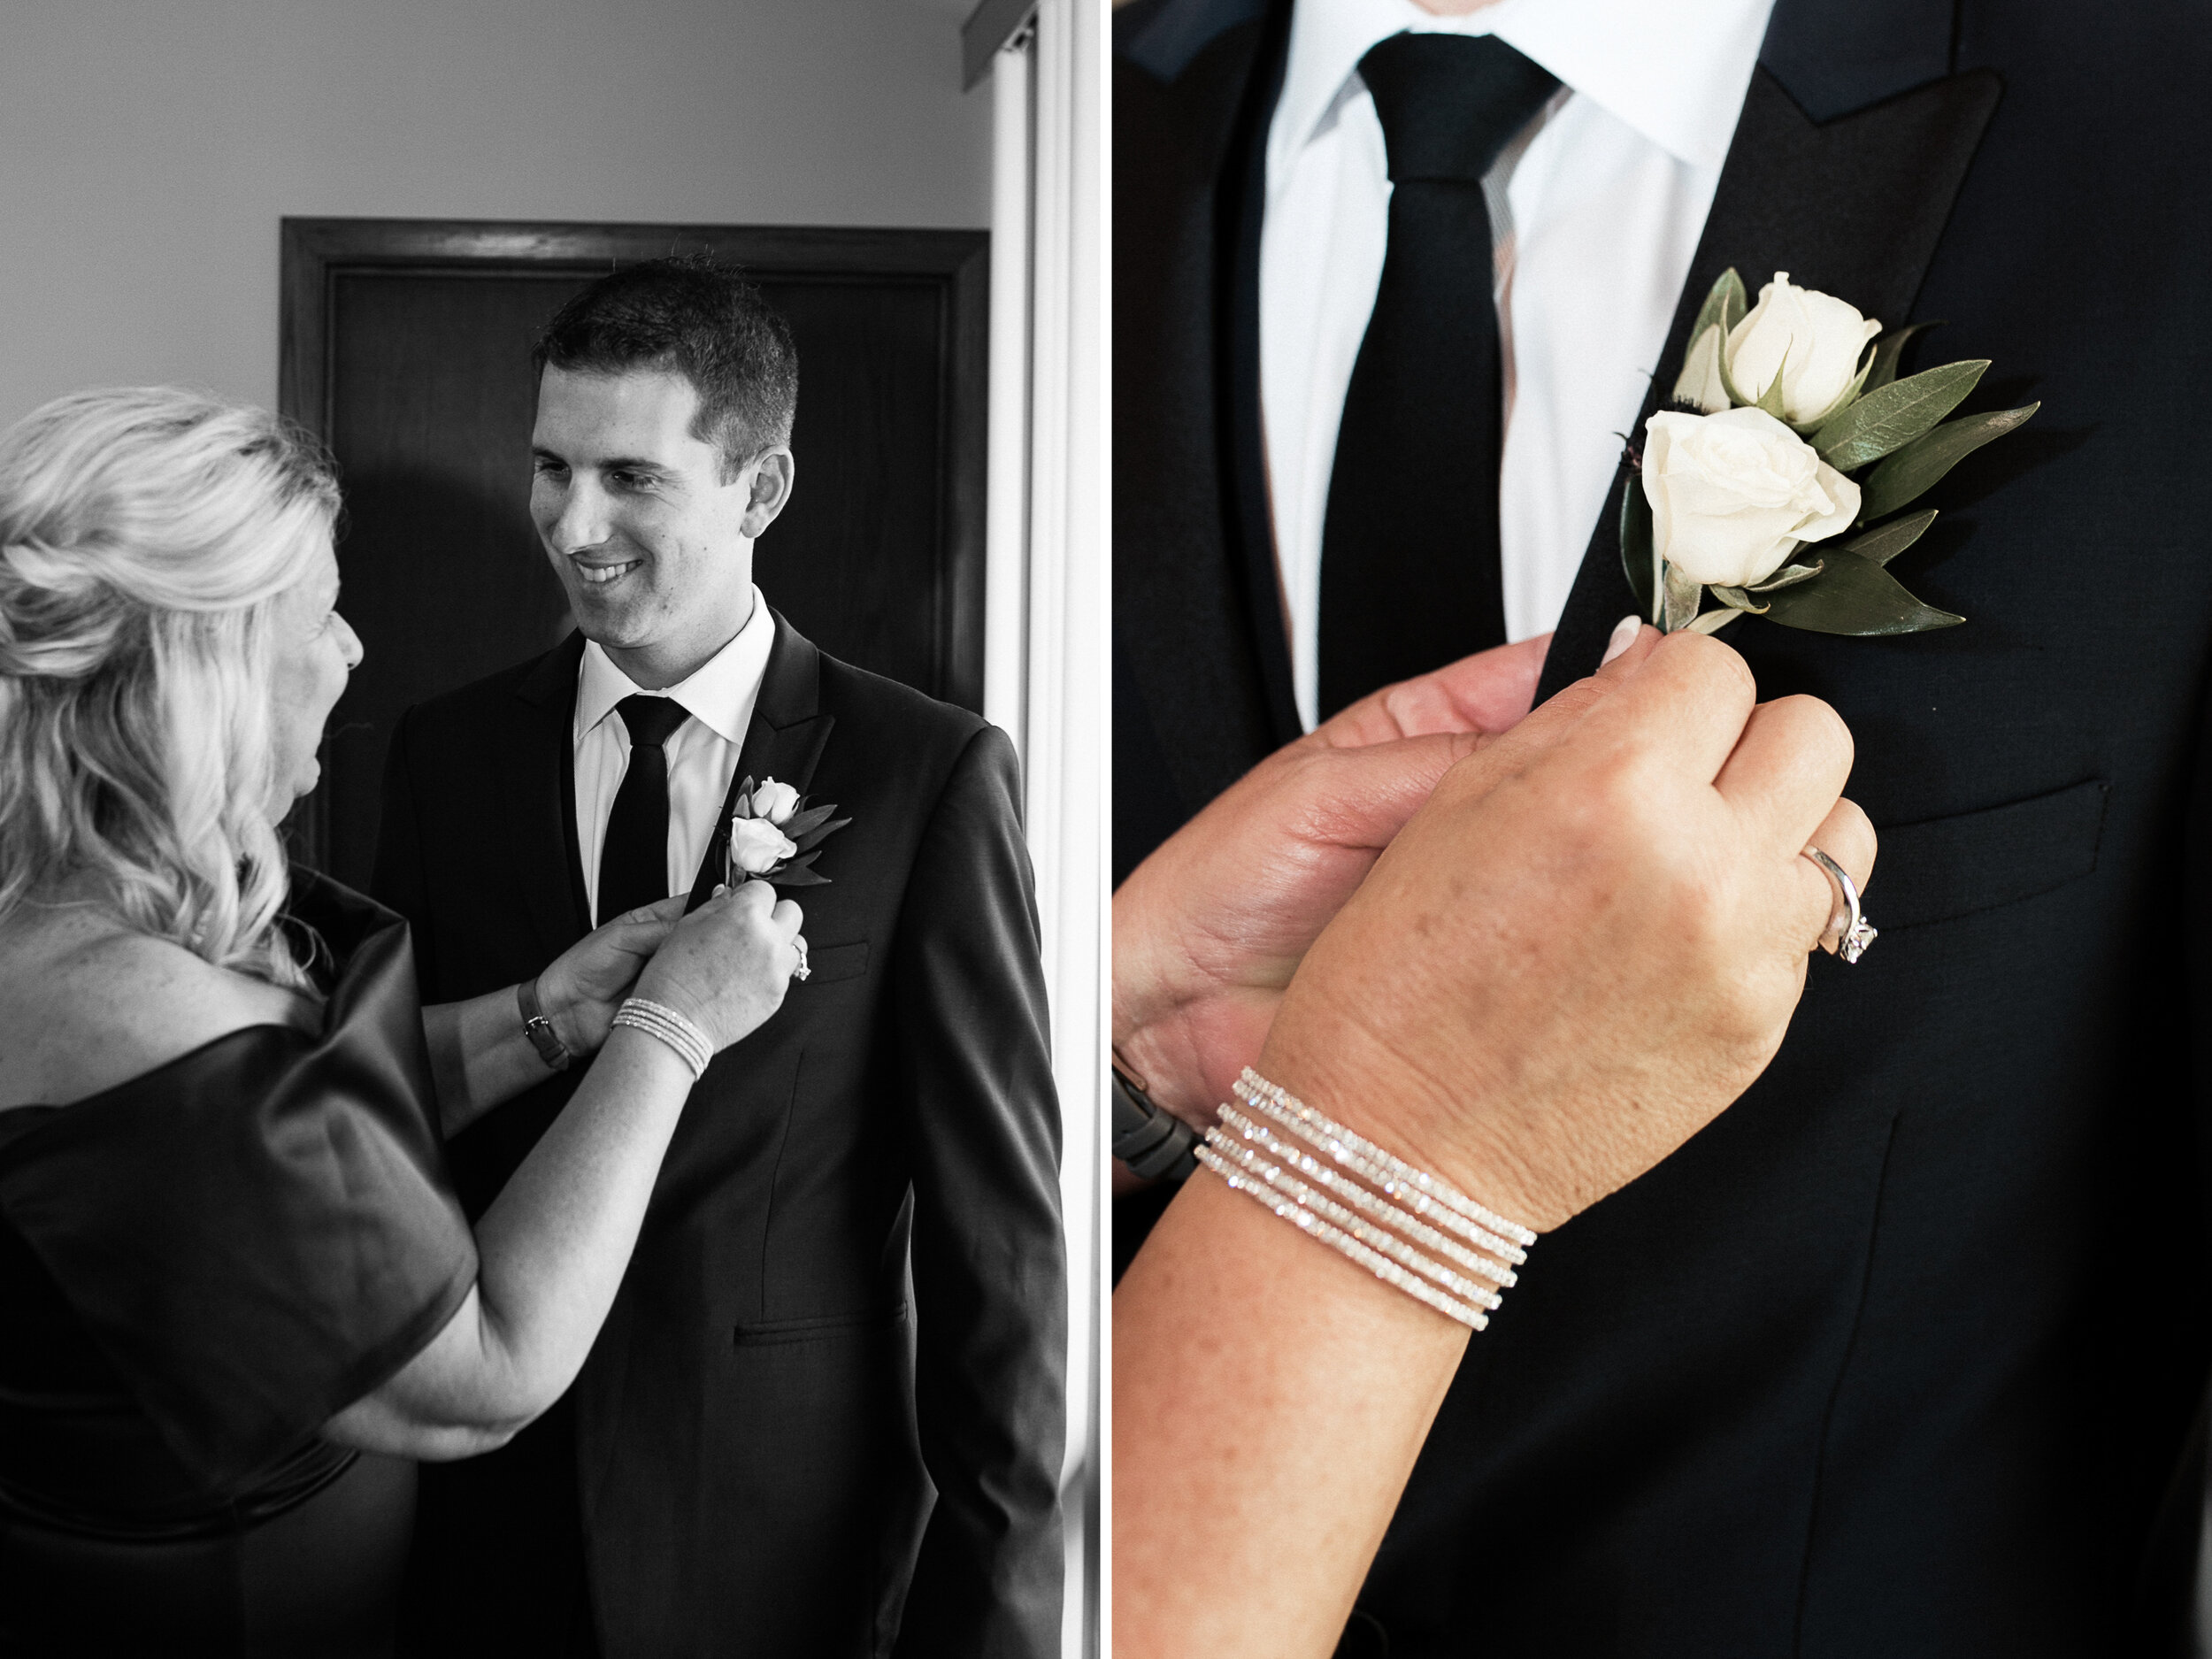 mother-of-groom-pinning-boutonniere.jpg